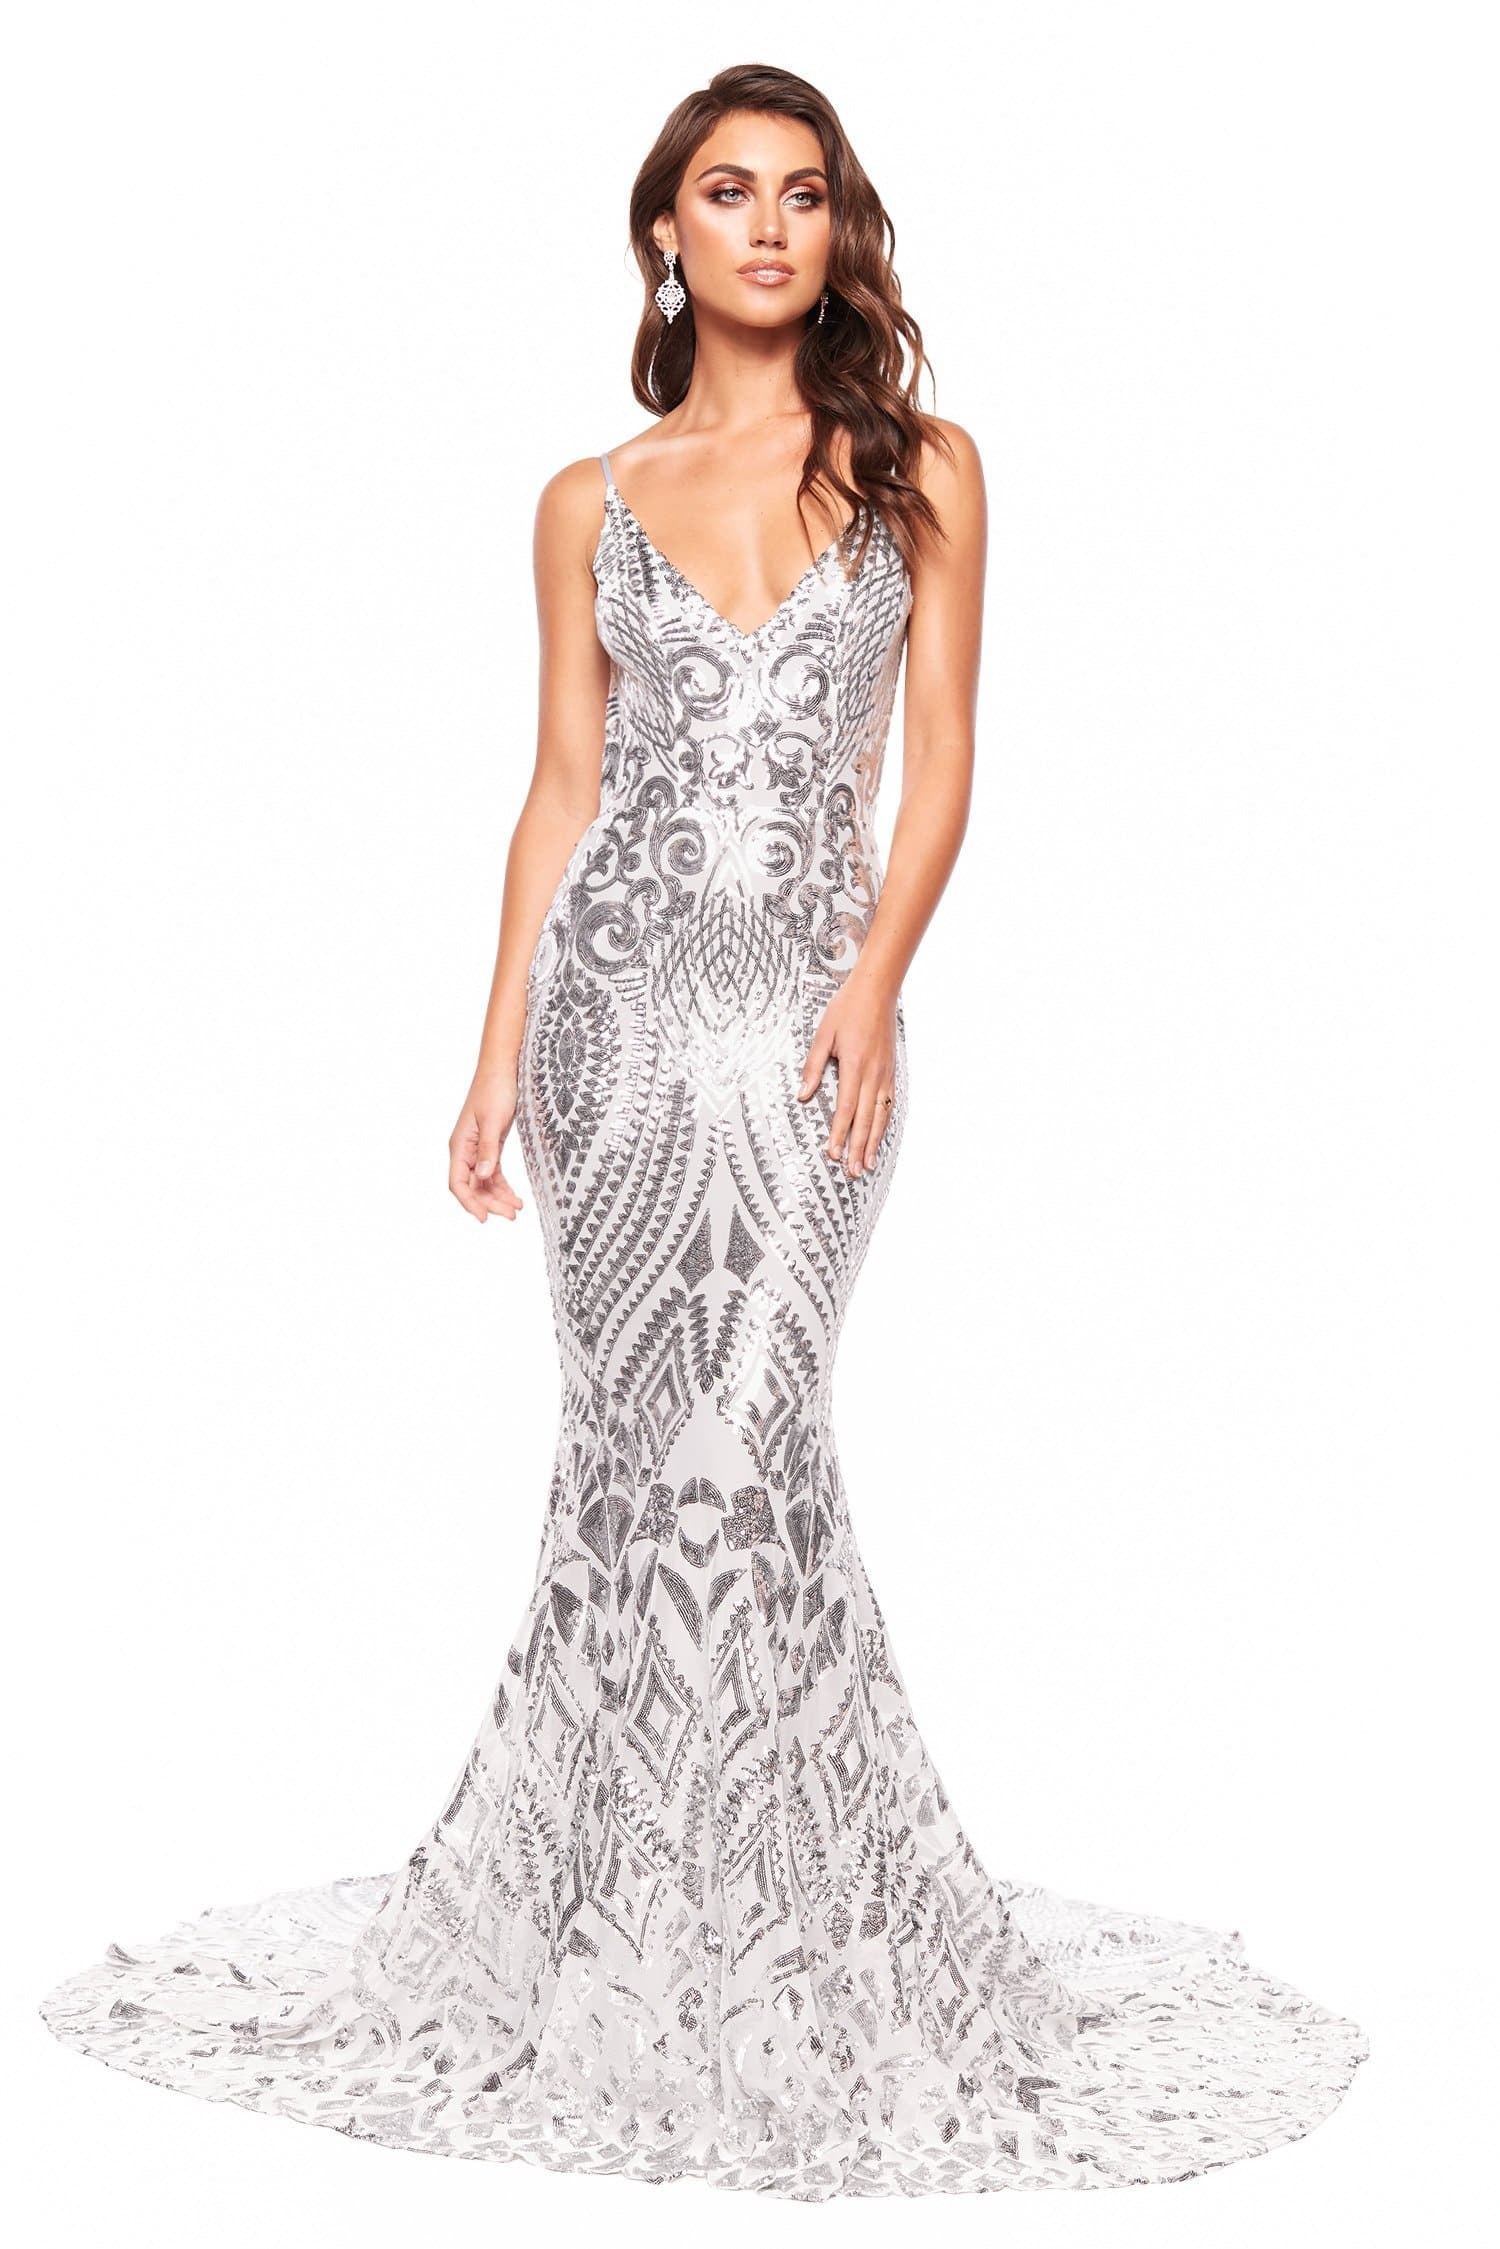 A&N Mariana - Silver Sequin Gown with Low Back and Mermaid Silhouette